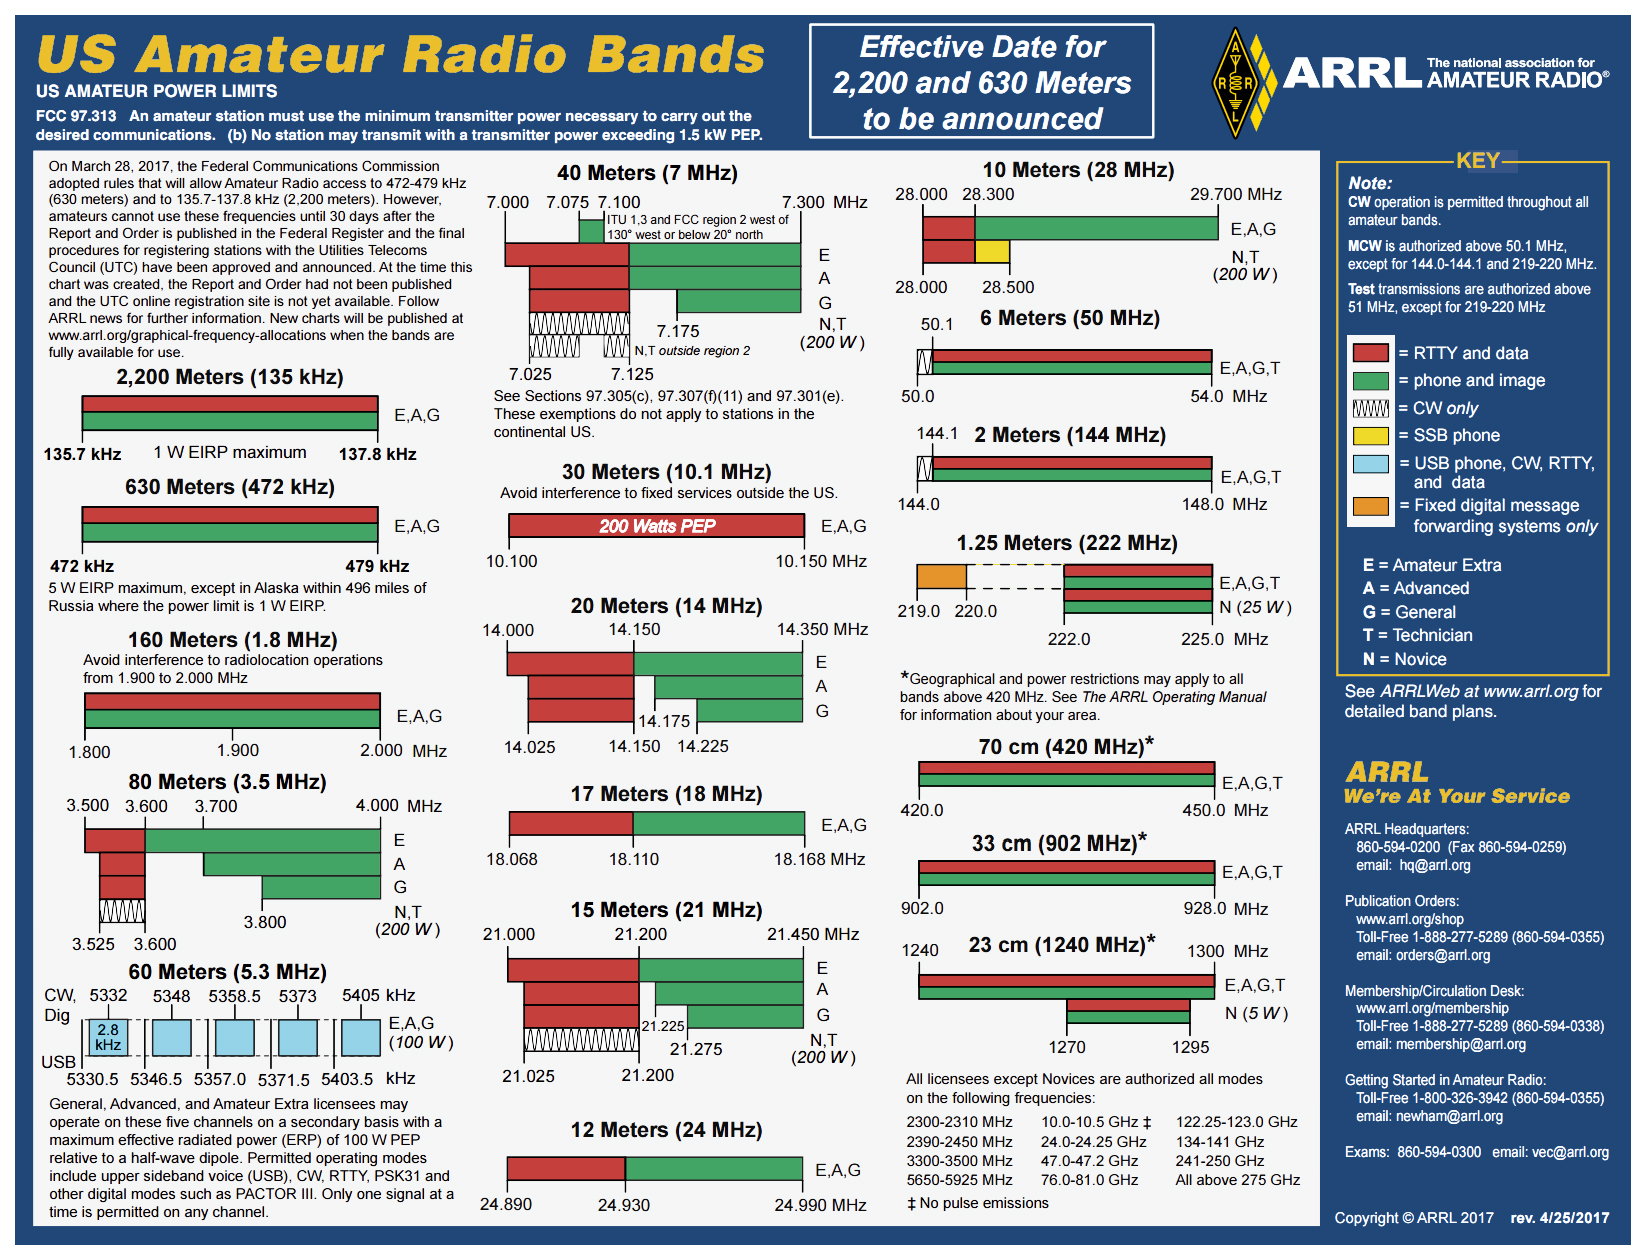 Dxcc Spreadsheet Pertaining To Files To Downloadlx4Sky Dxcc Spreadsheet Printable Spreadshee Printable Spreadshee dxcc spreadsheet